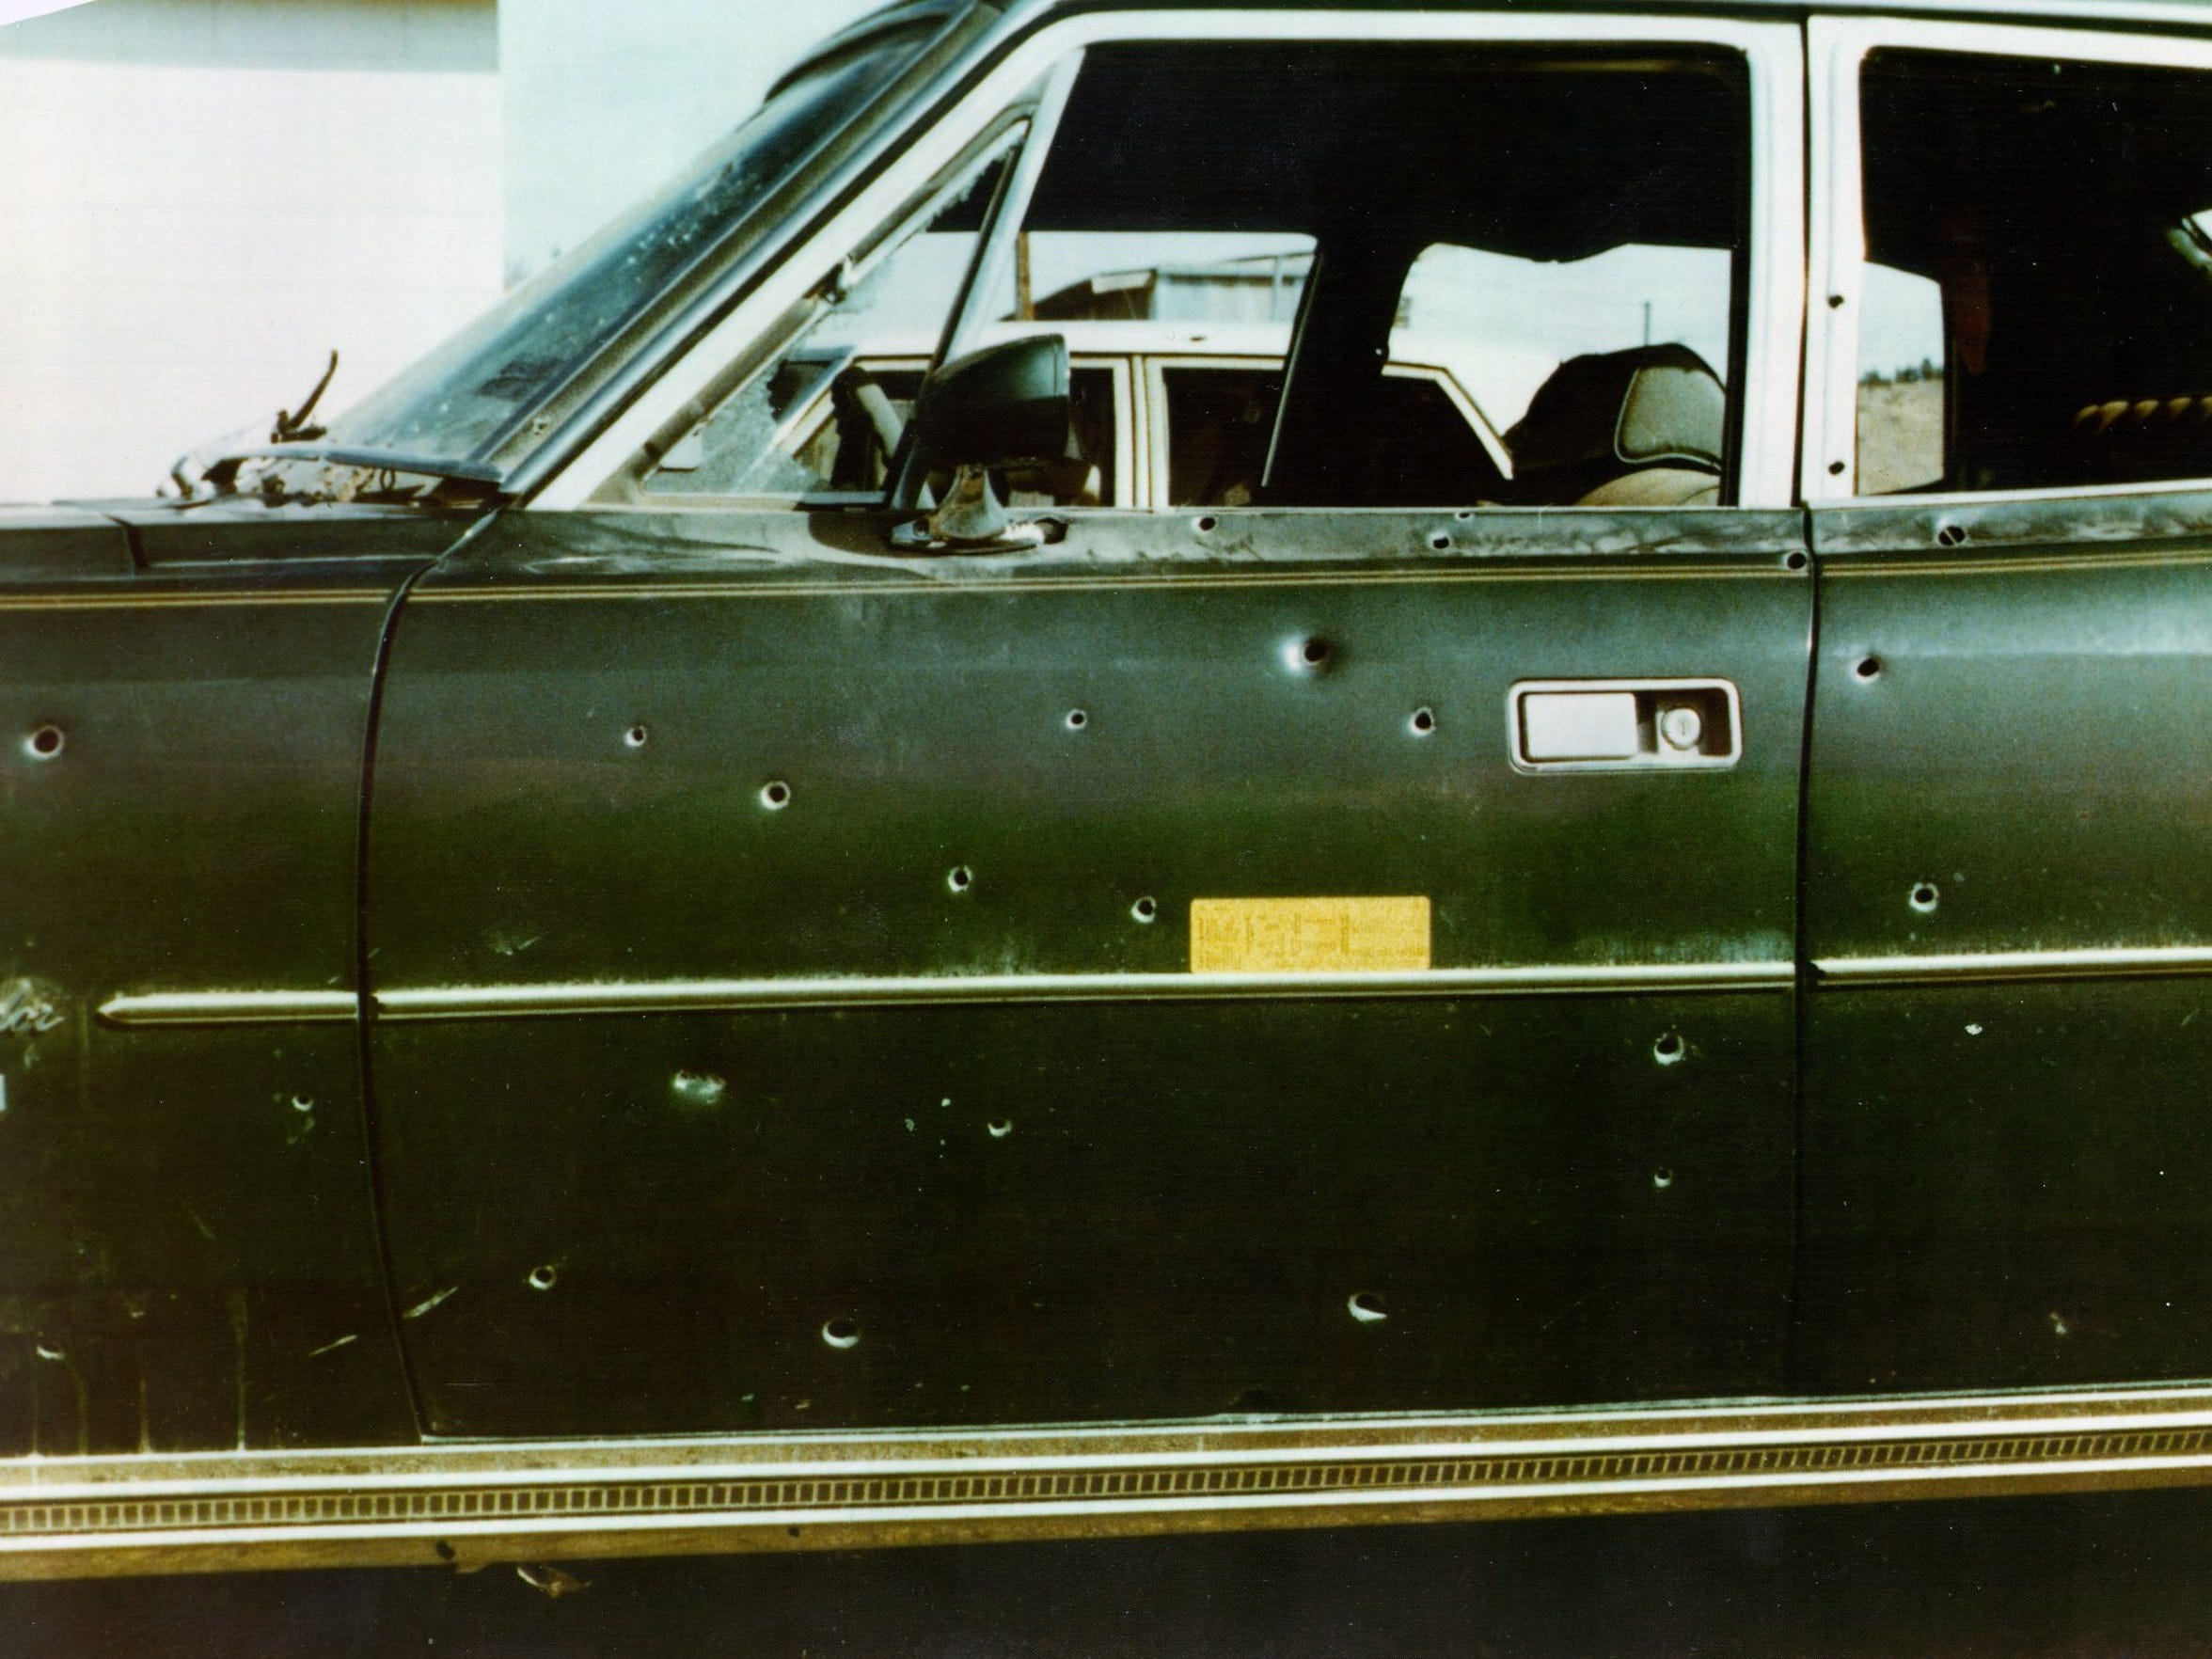 The car riddled with bullet holes.